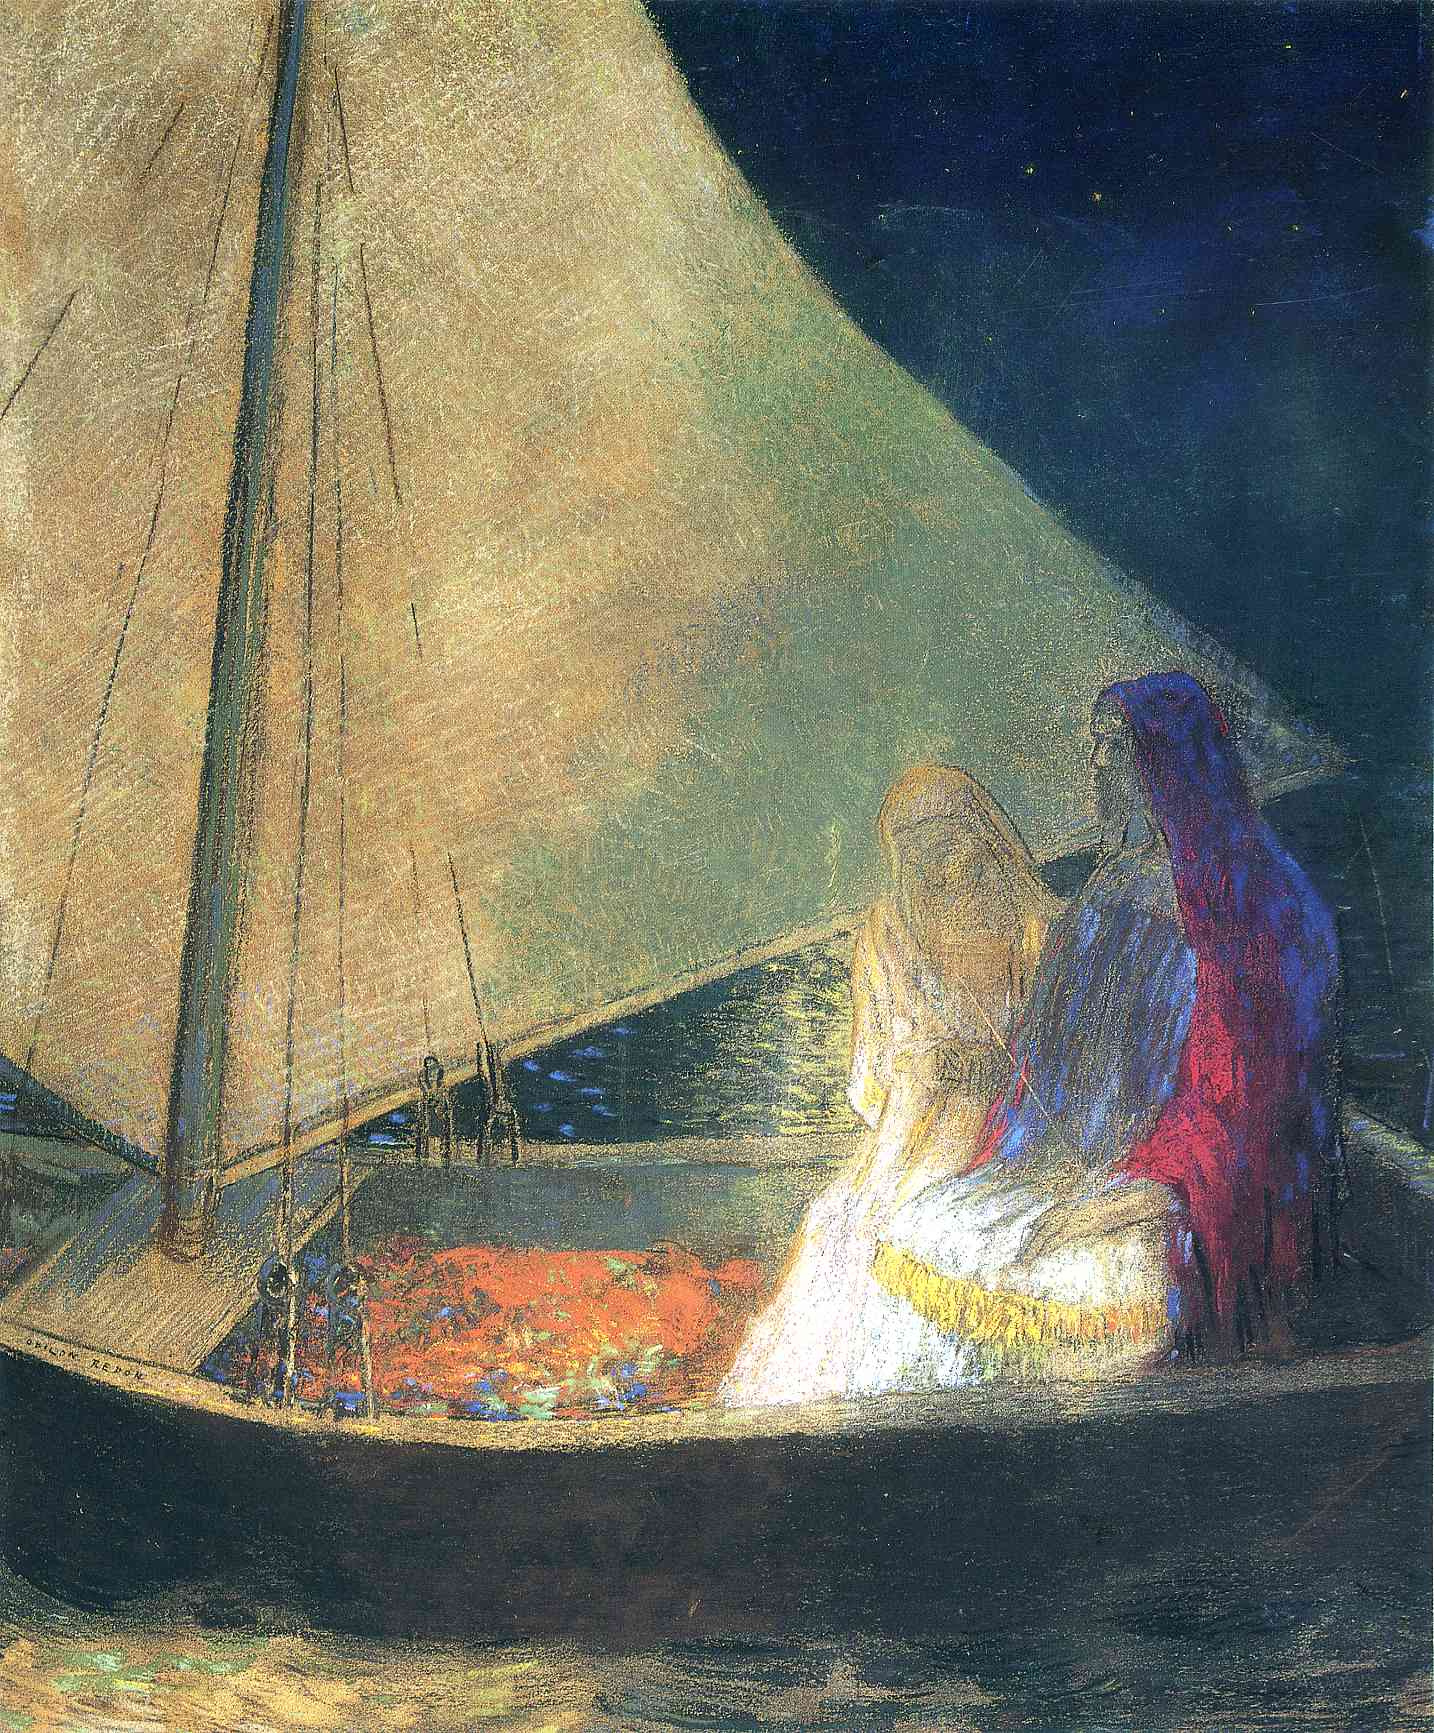 Boat with Two Figures, painting by Odilon Redding